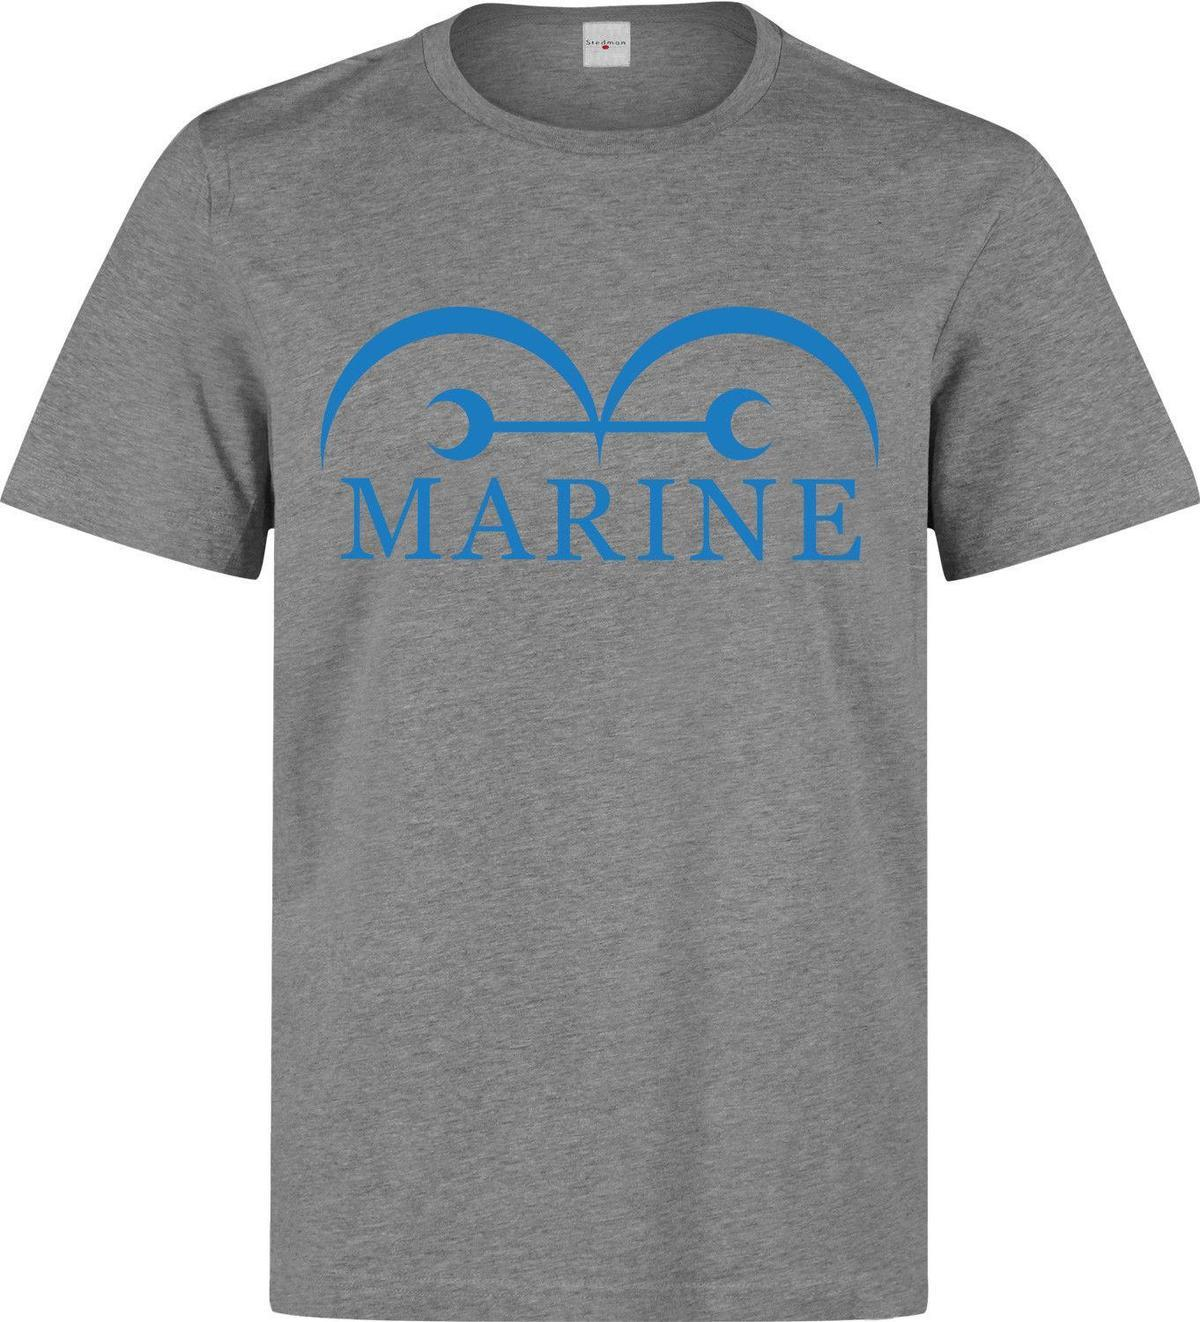 15af6ec7a2cdef One Piece Anime Manga Marine Symbol men's (woman's available) grey t shirt